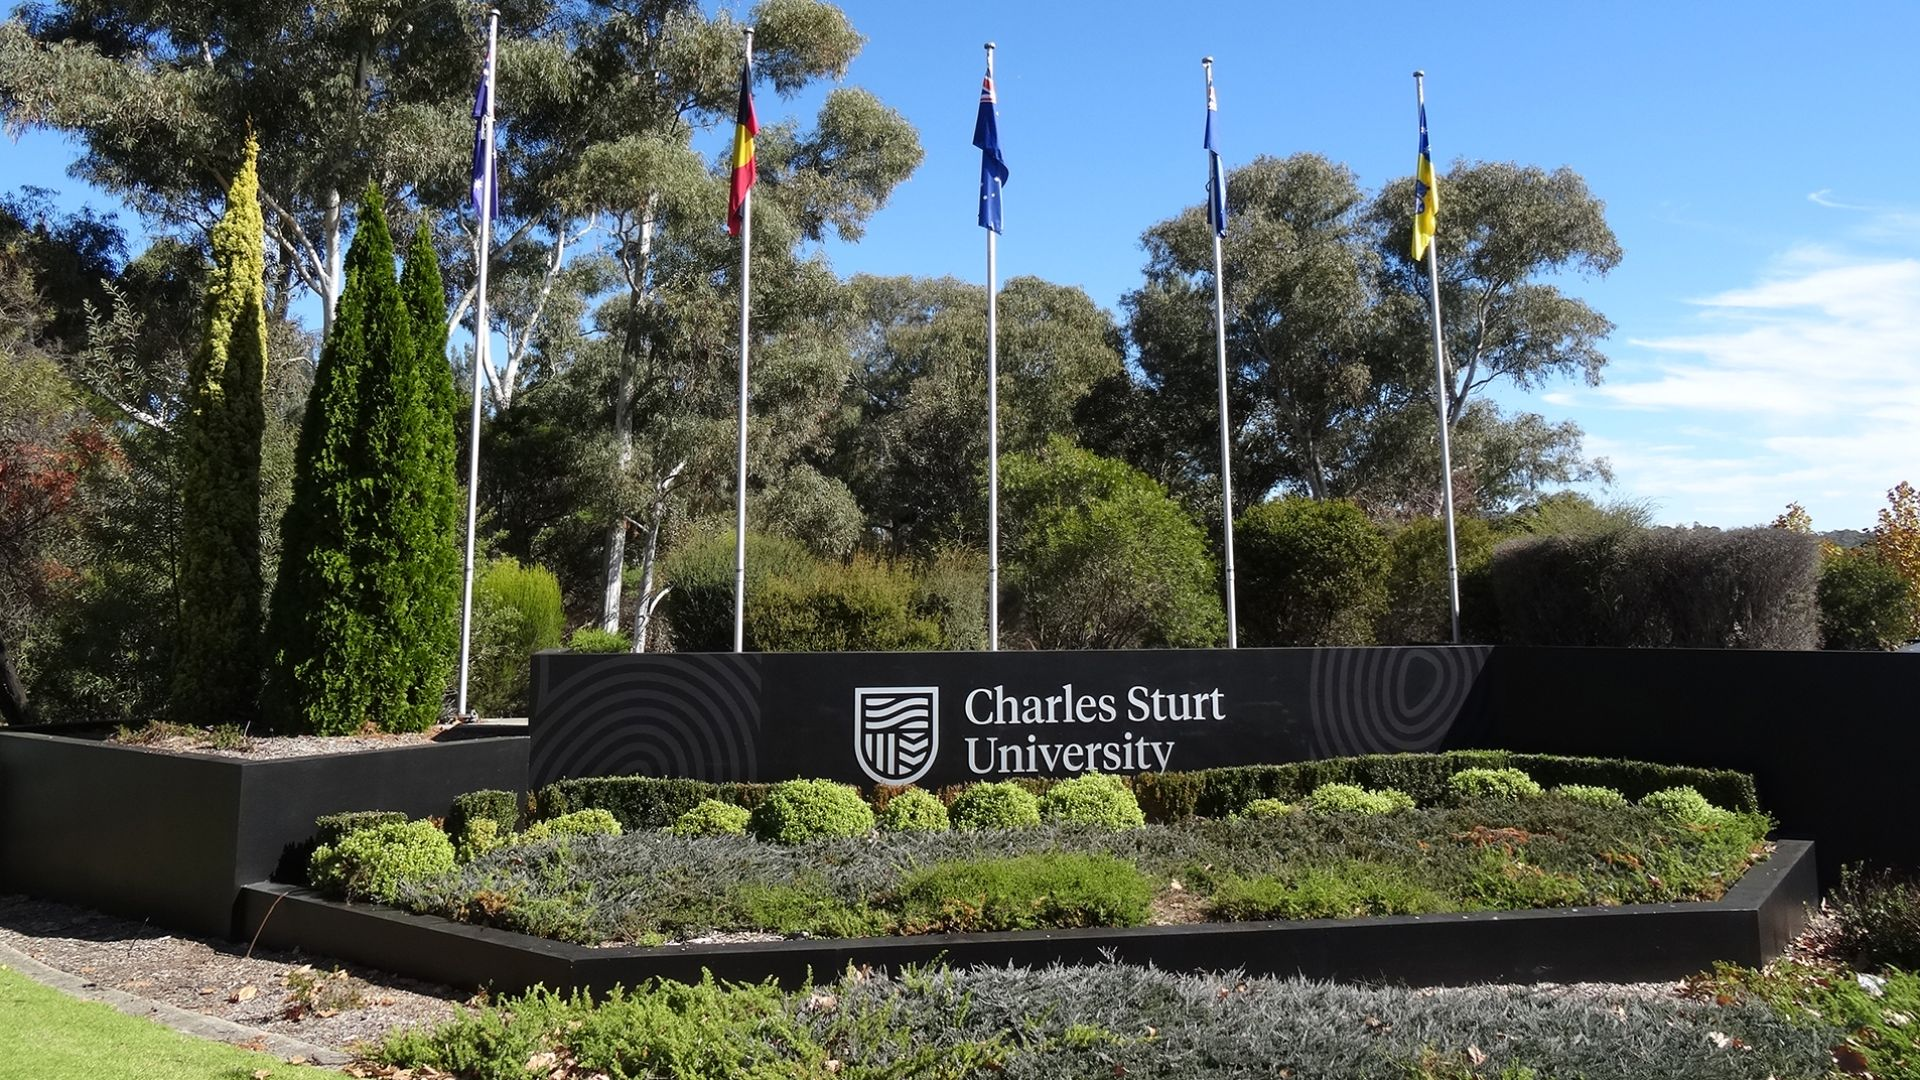 NSW Minister to visit Charles Sturt in Bathurst